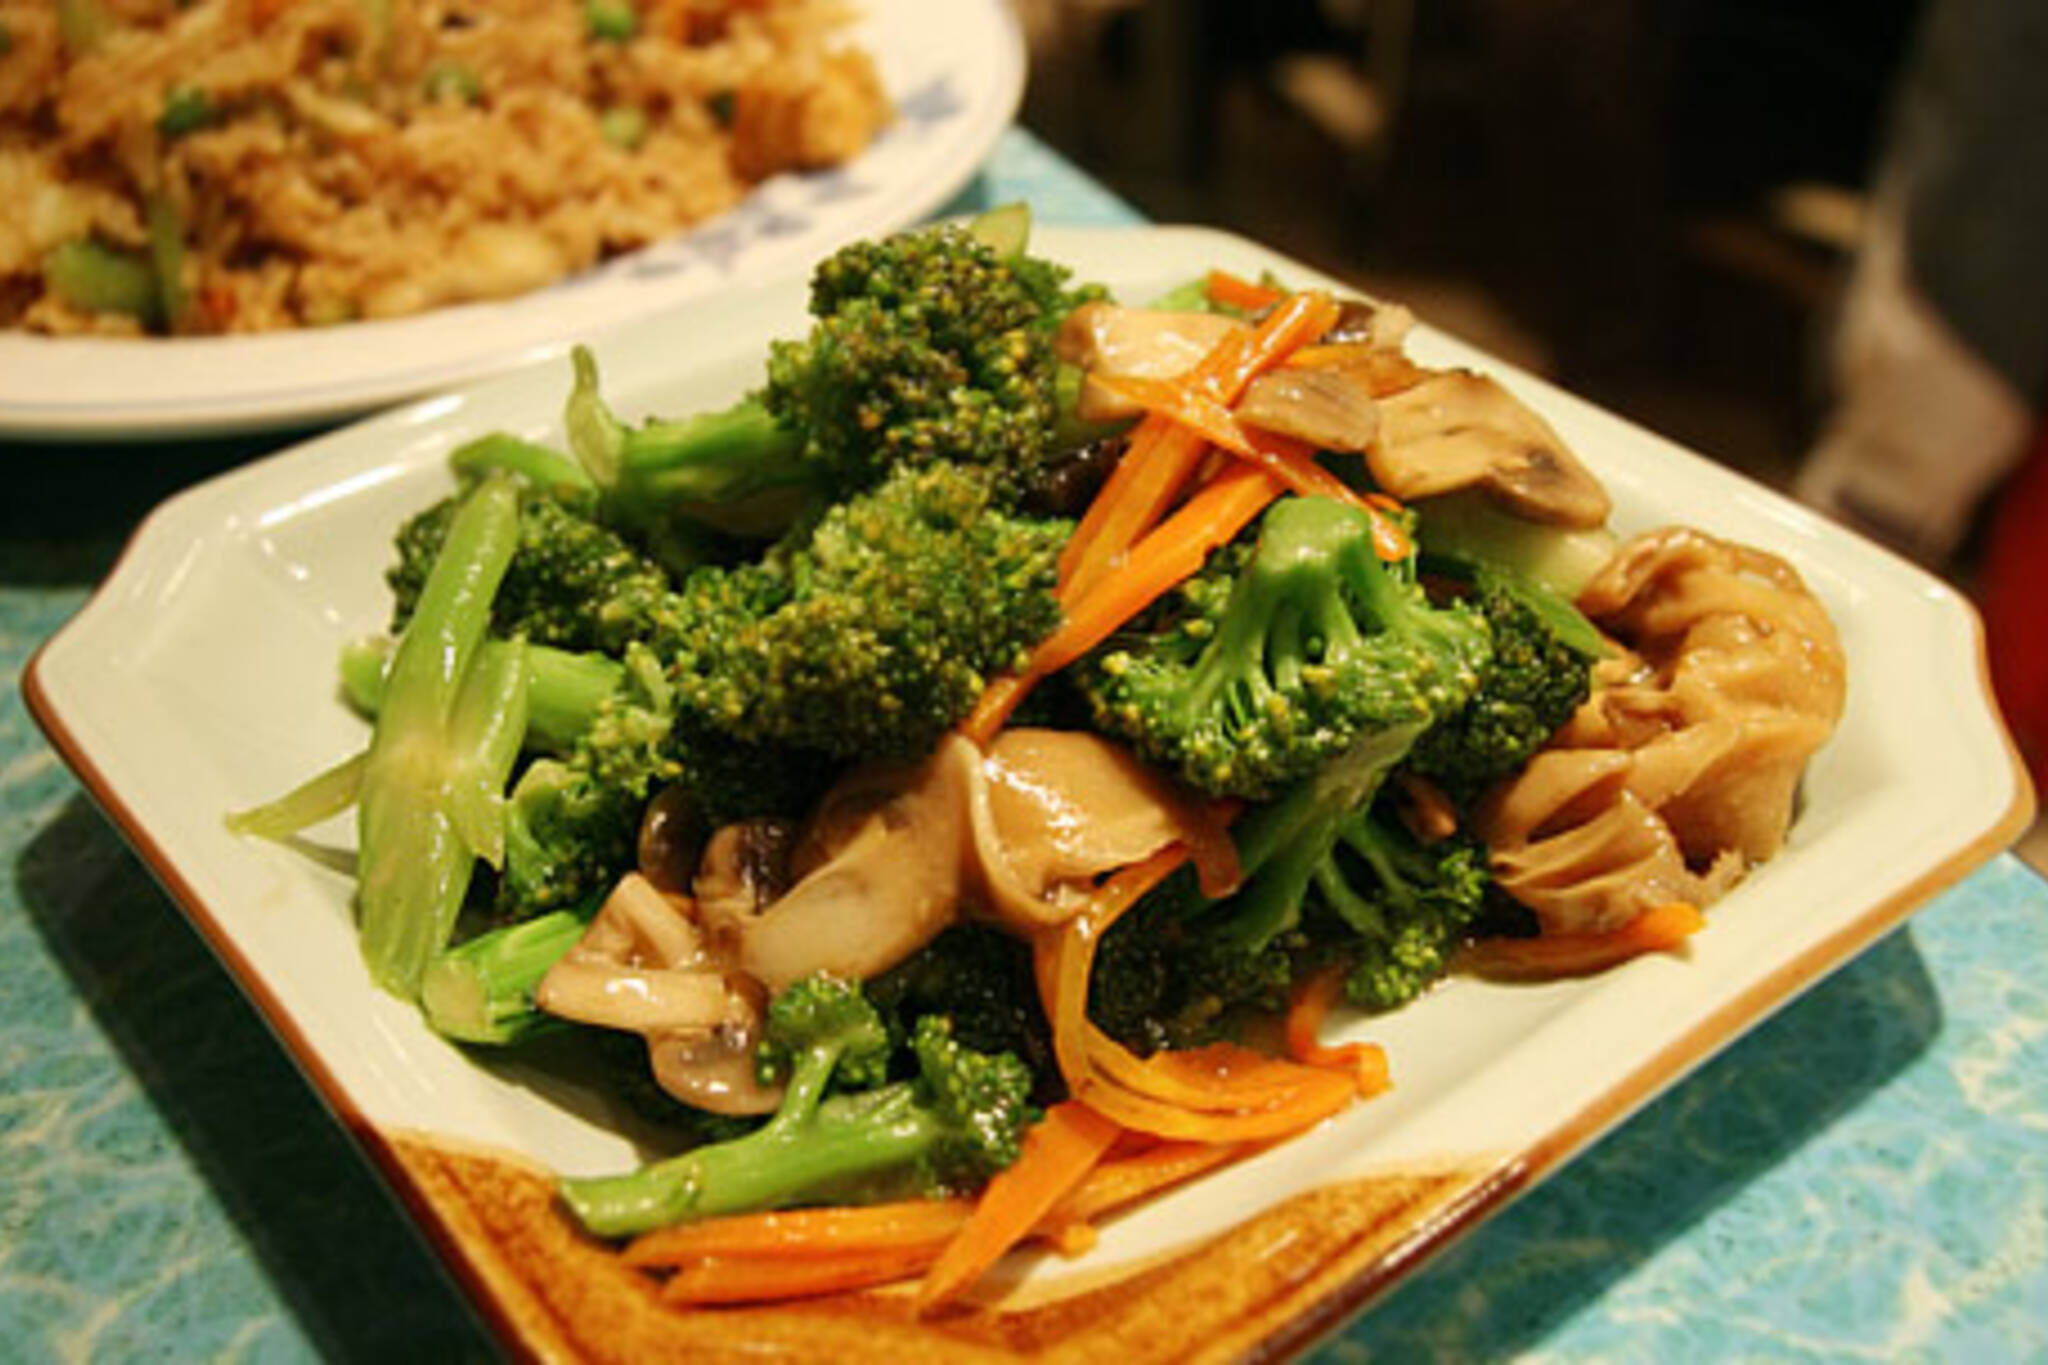 Broccoli and 3 Mushrooms at Cafe 668